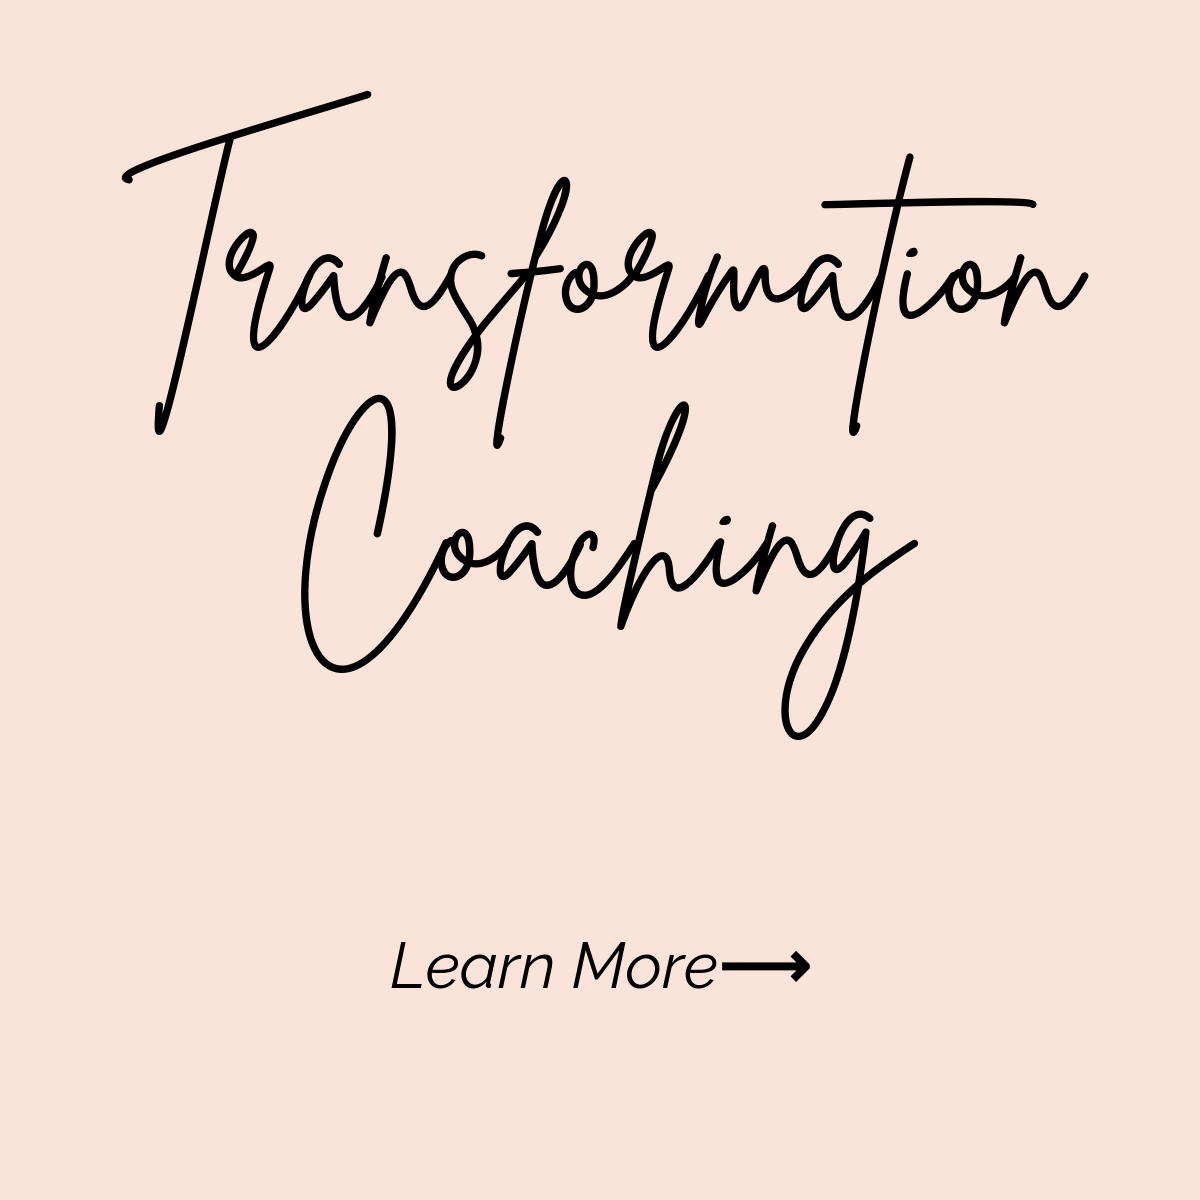 transformation coaching learn more.png